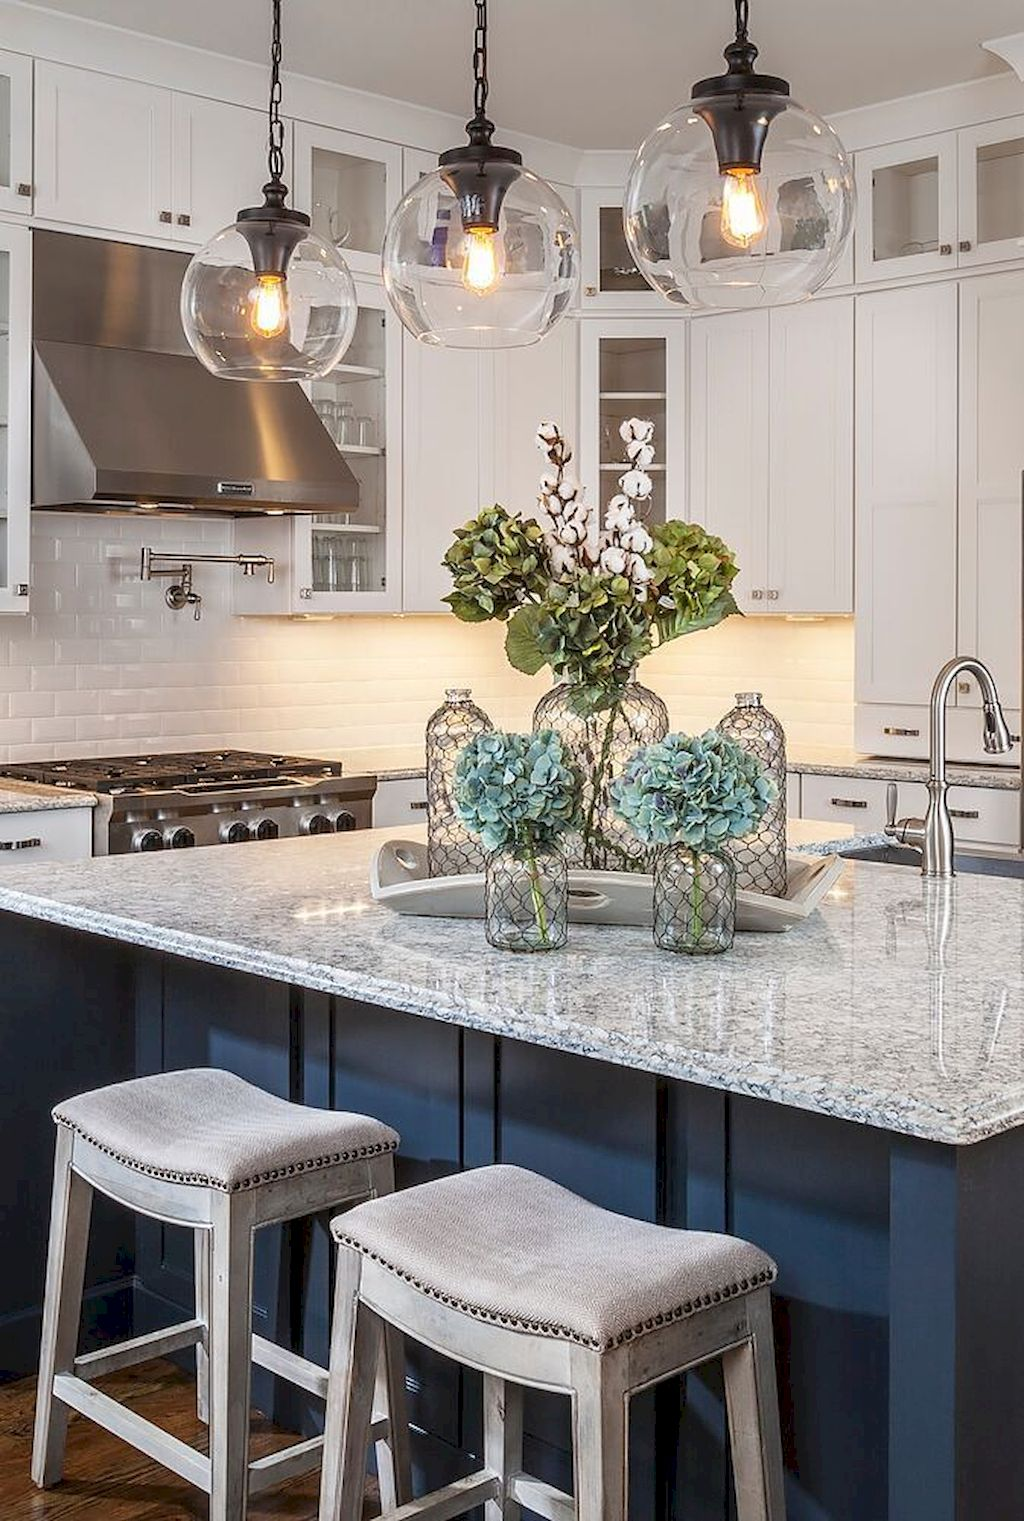 Kitchen Pendant Design in Maximum Functions and Look Part 34